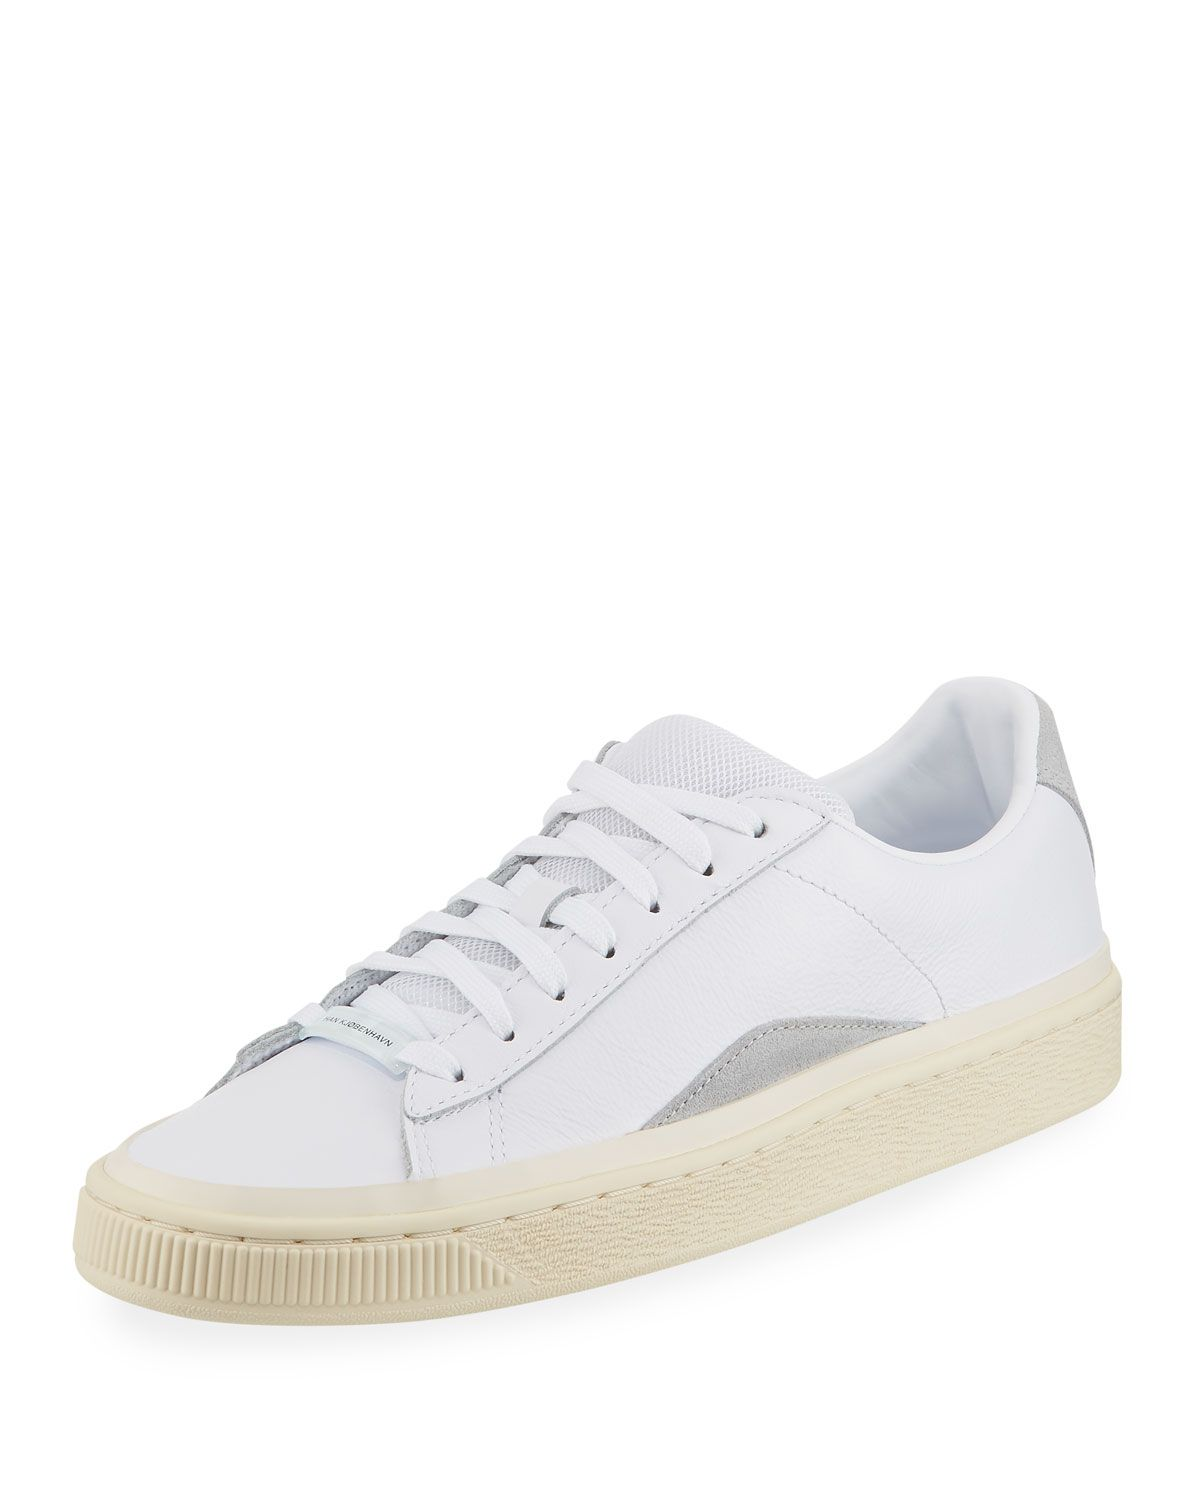 Puma Men S Han Kjobenhavn Basket Leather Lace Up Sneakers In White Modesens Leather Sneakers Sneakers Han Kjobenhavn